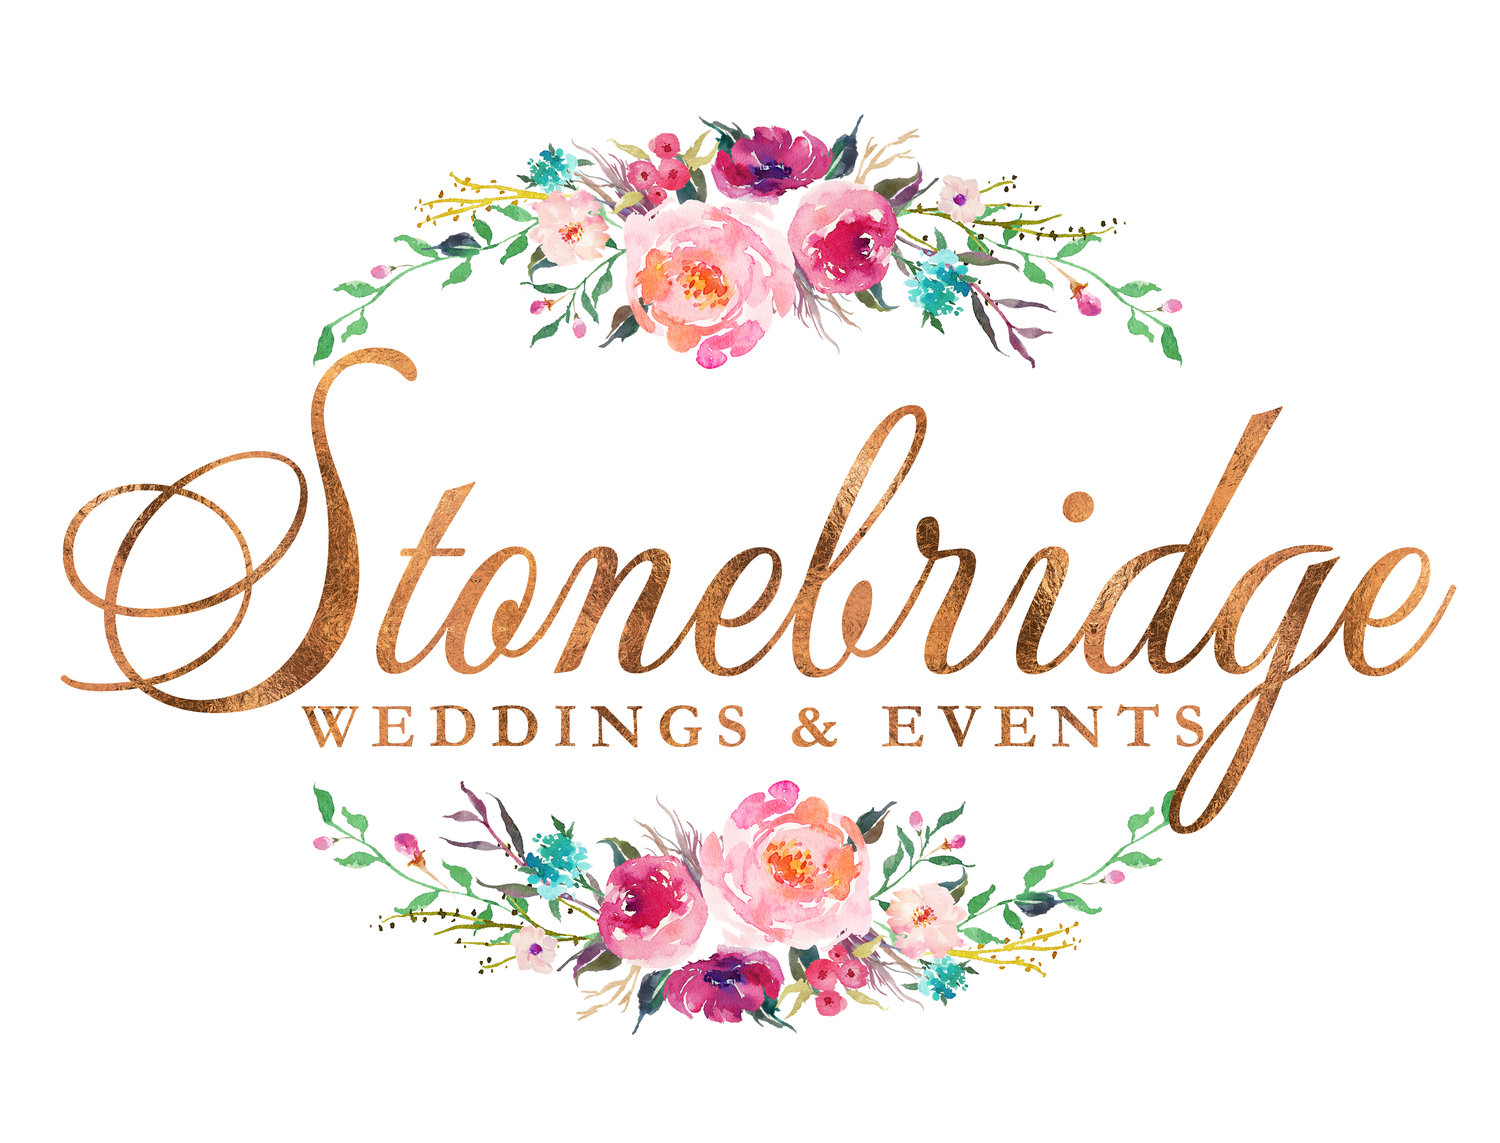 Stonebridge Weddings & Events